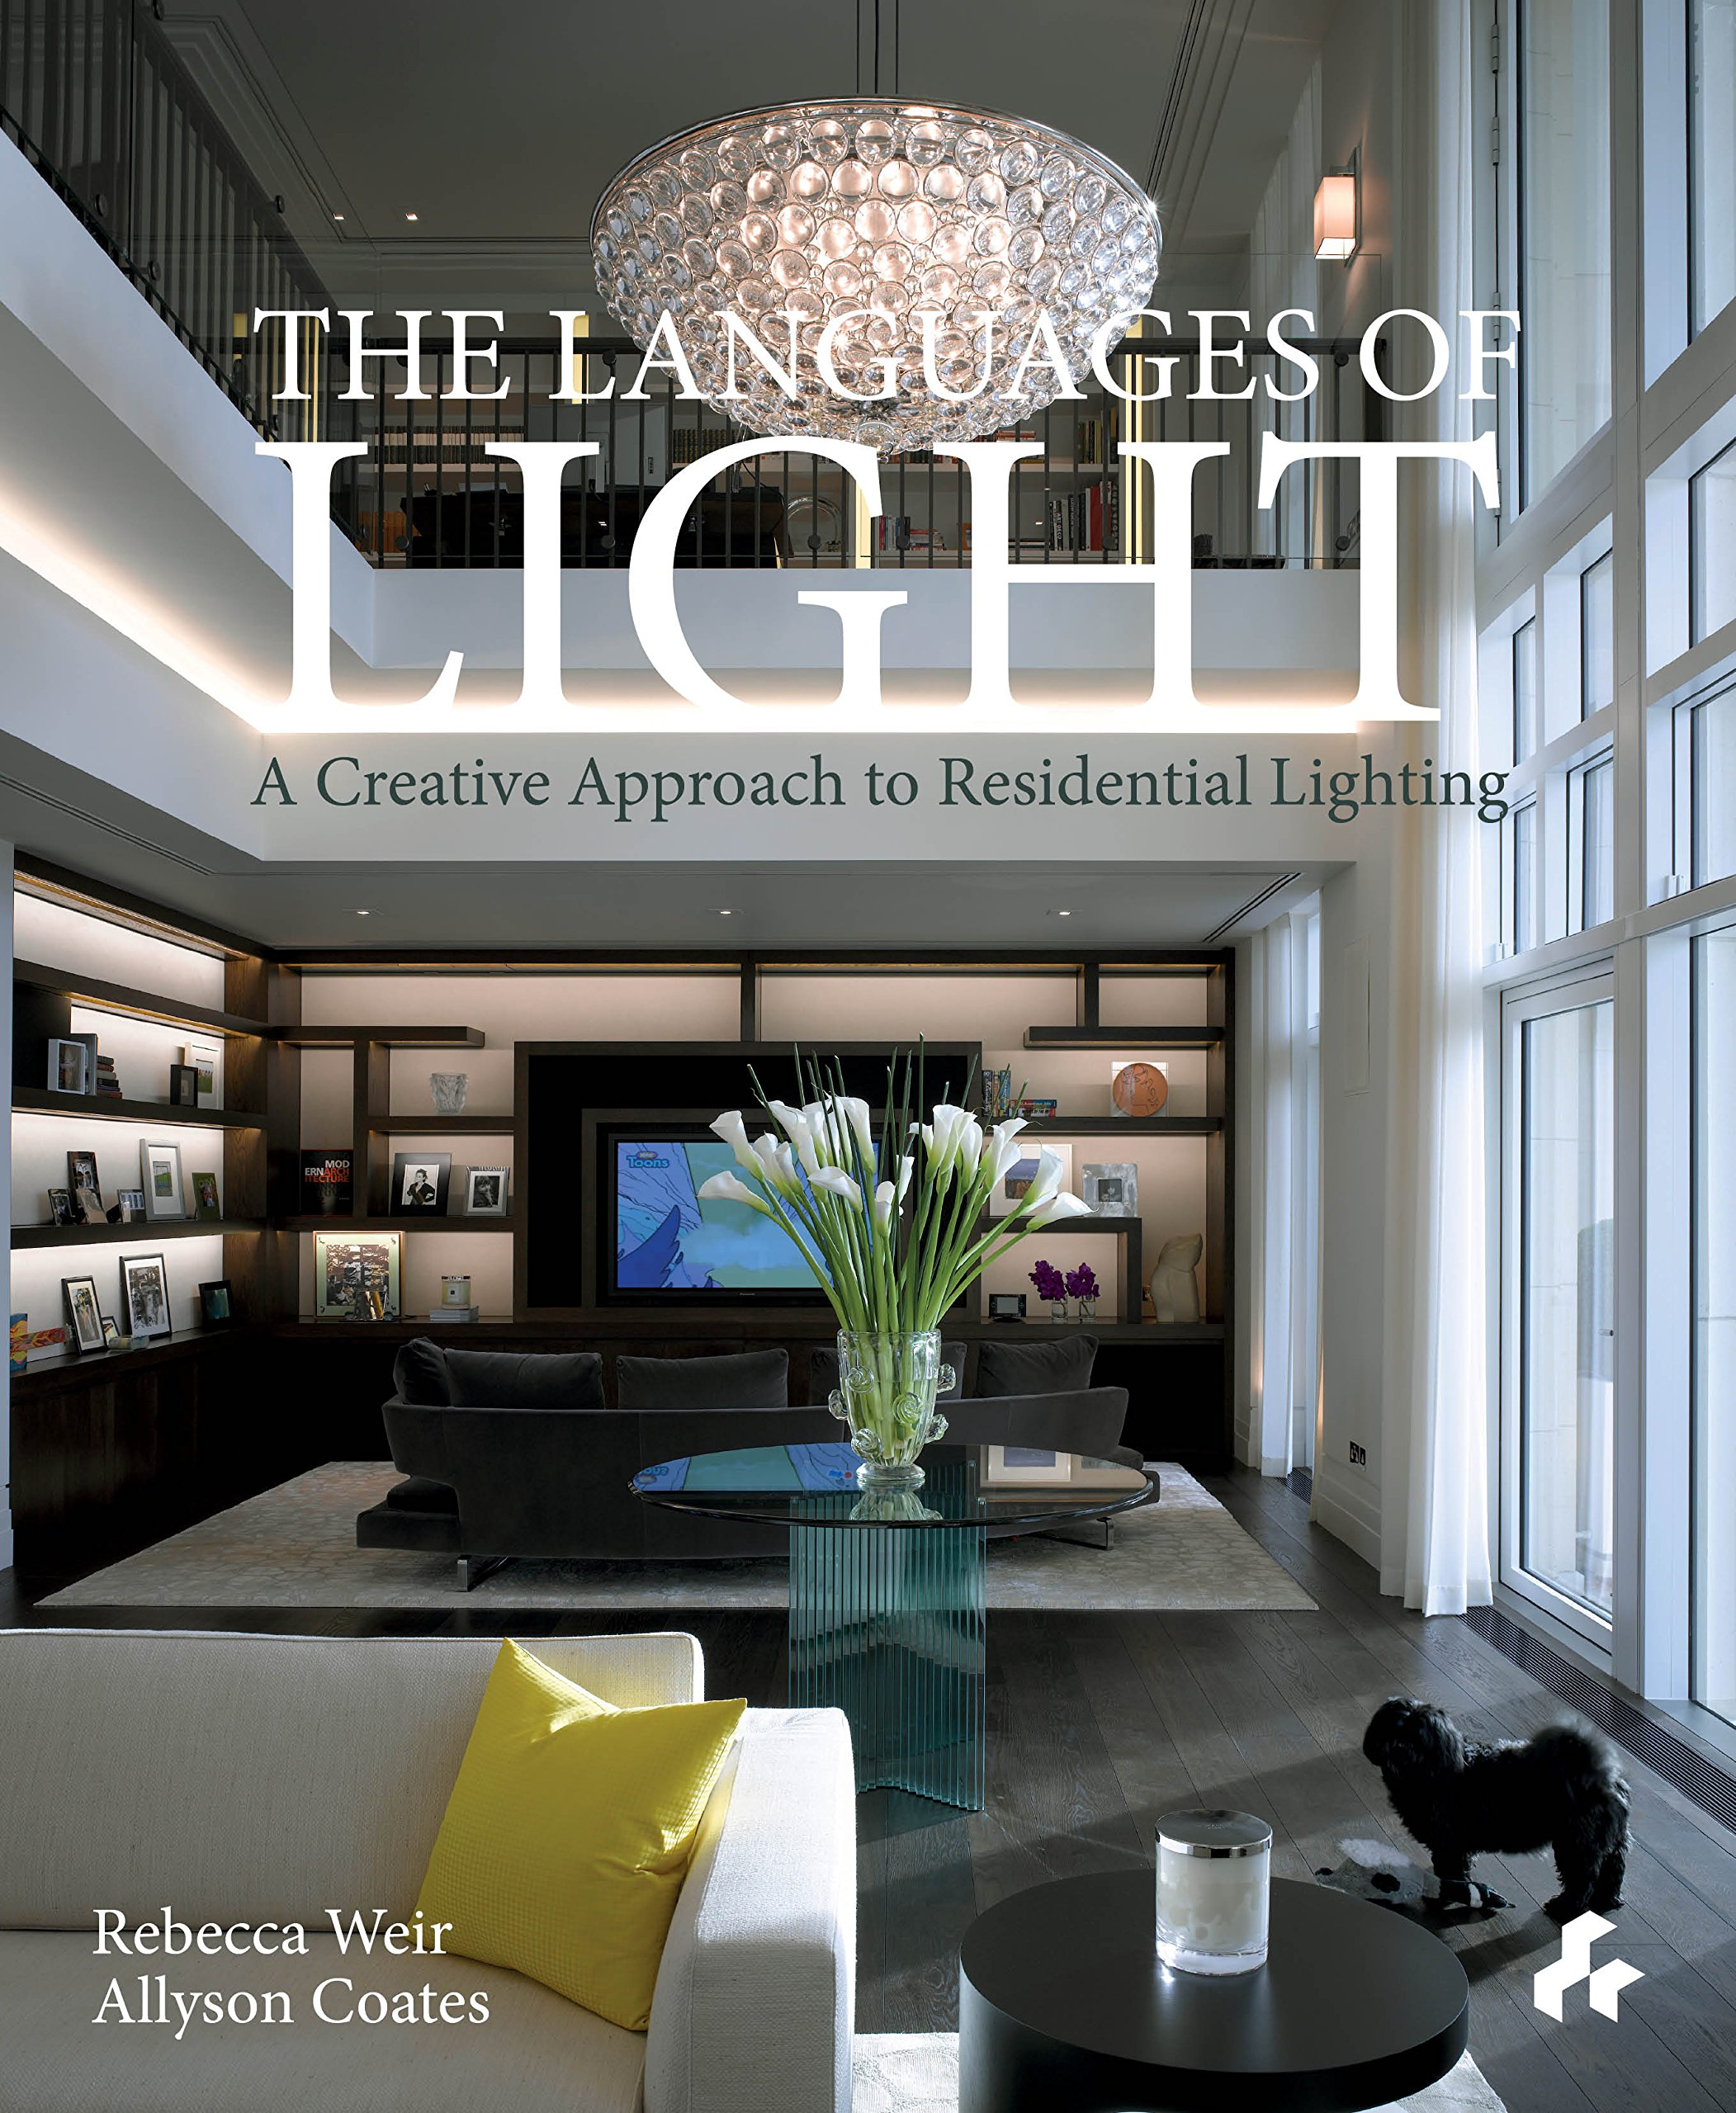 Languages of Light: A Creative Approach to Residental Lighting by Artifice Books on Architecture